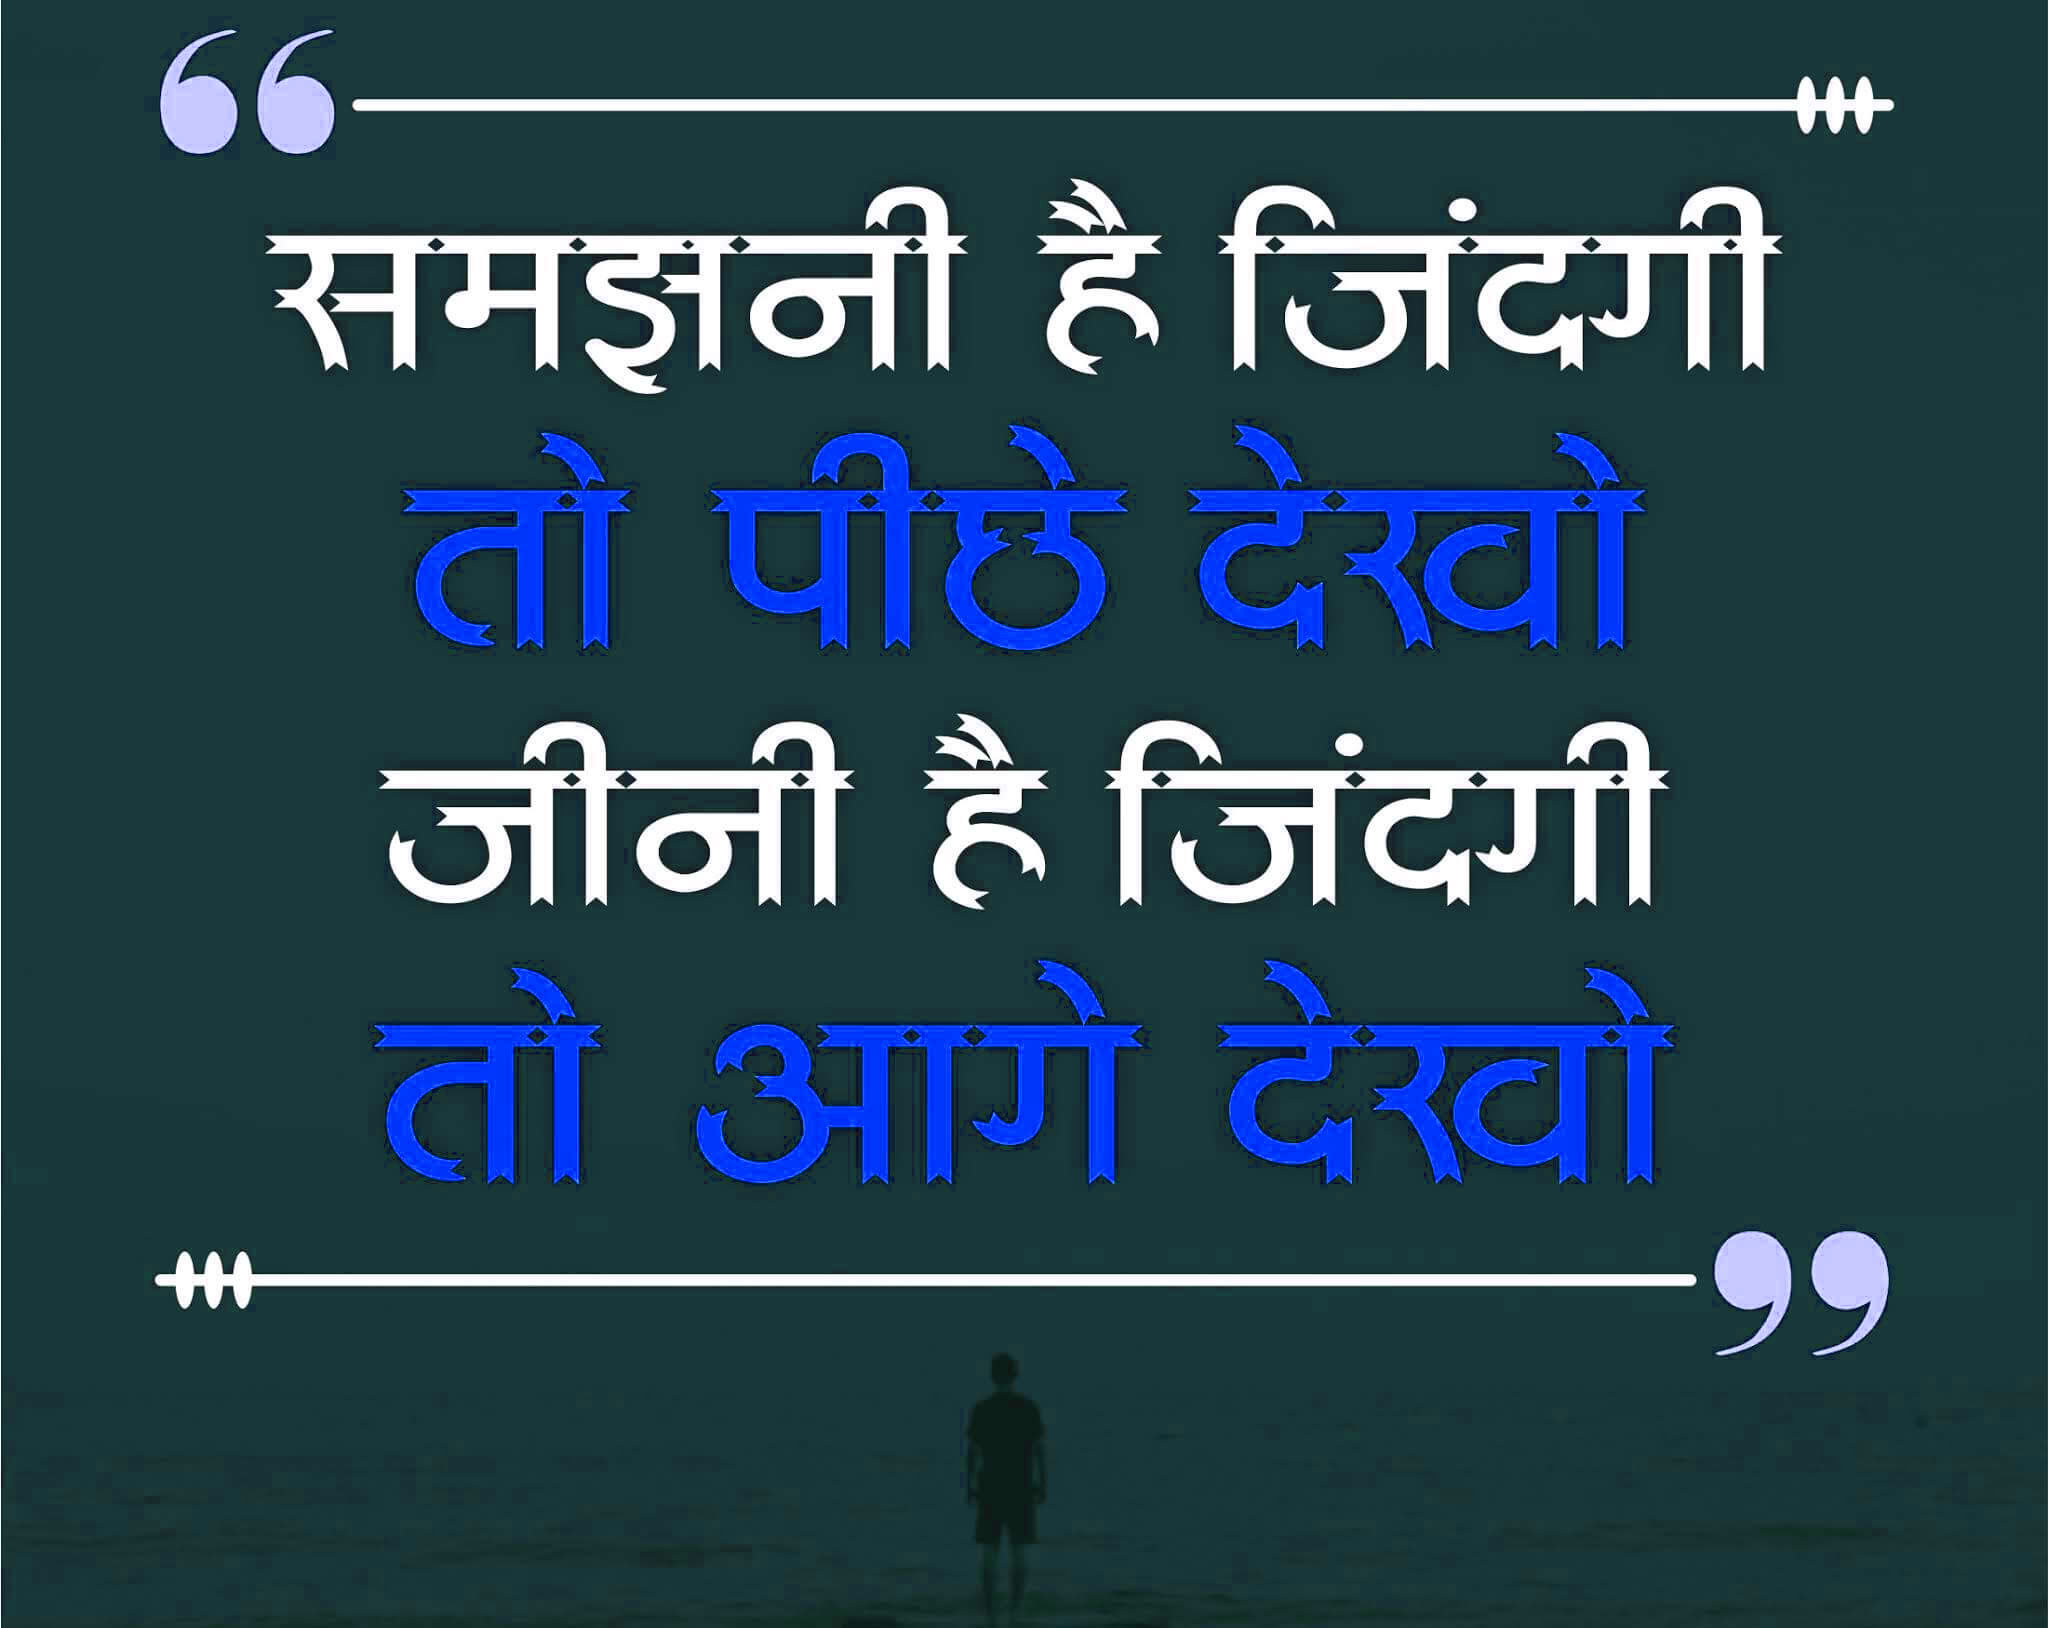 SAD LOVE ROMANTIC LIFE BEST HINDI SHAYARI IMAGES PIC WALLPAPER FOR FACEBOOK